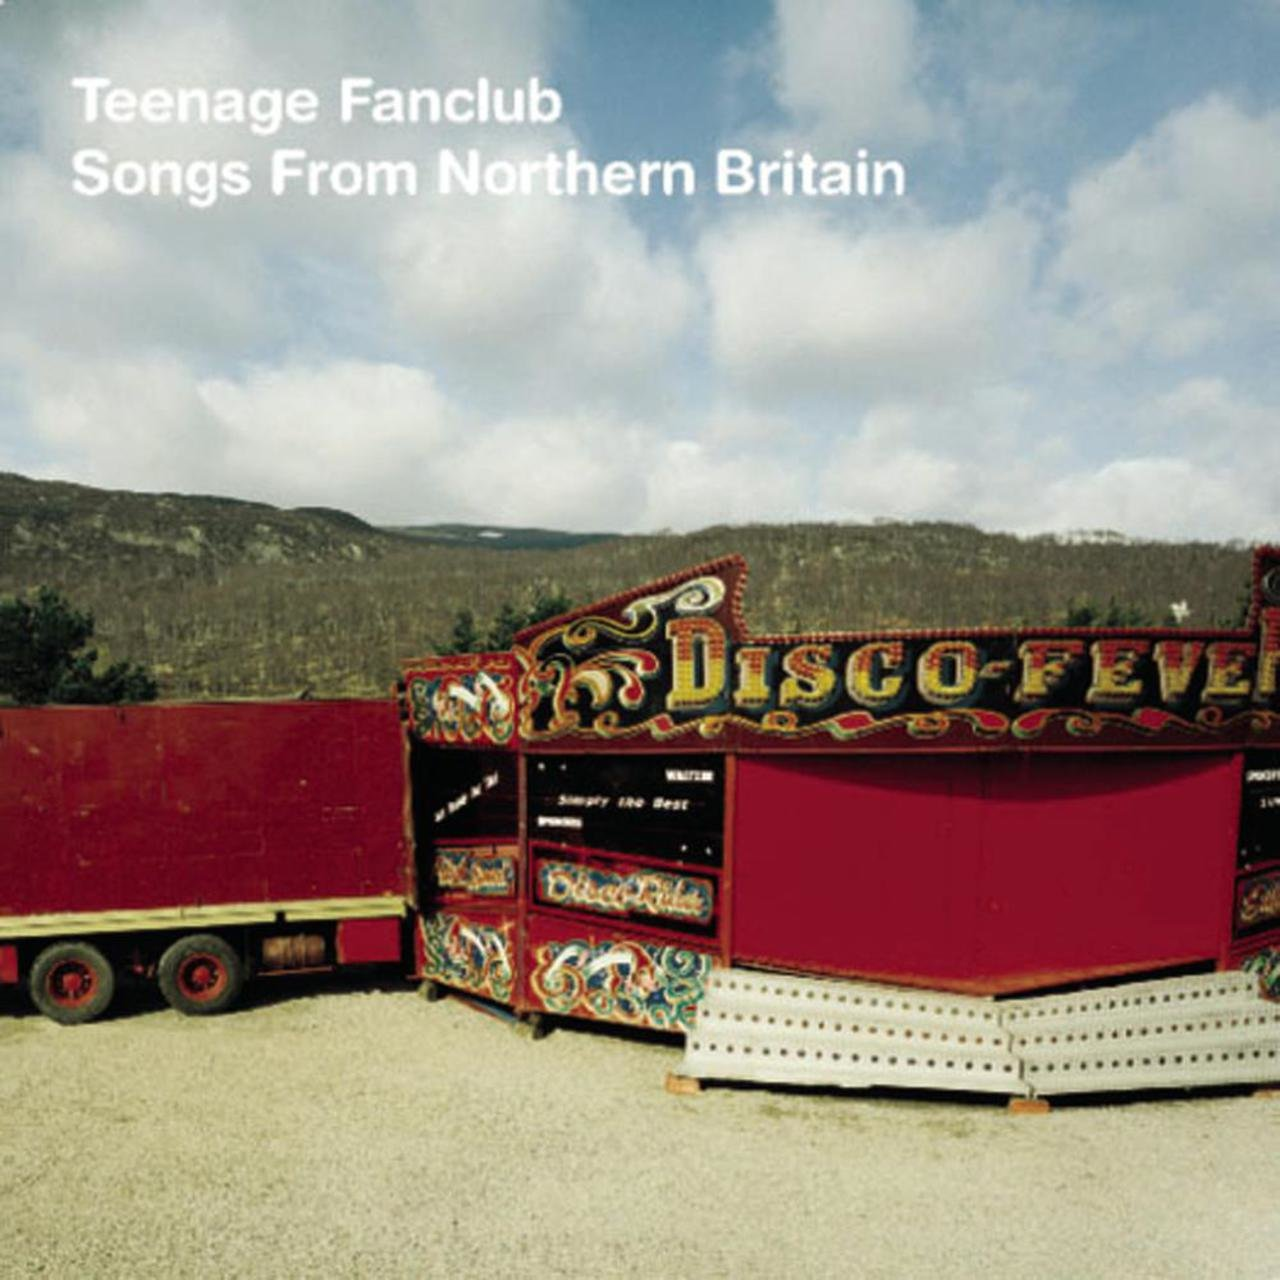 teenage fanclub Top 50 Albums of 1997